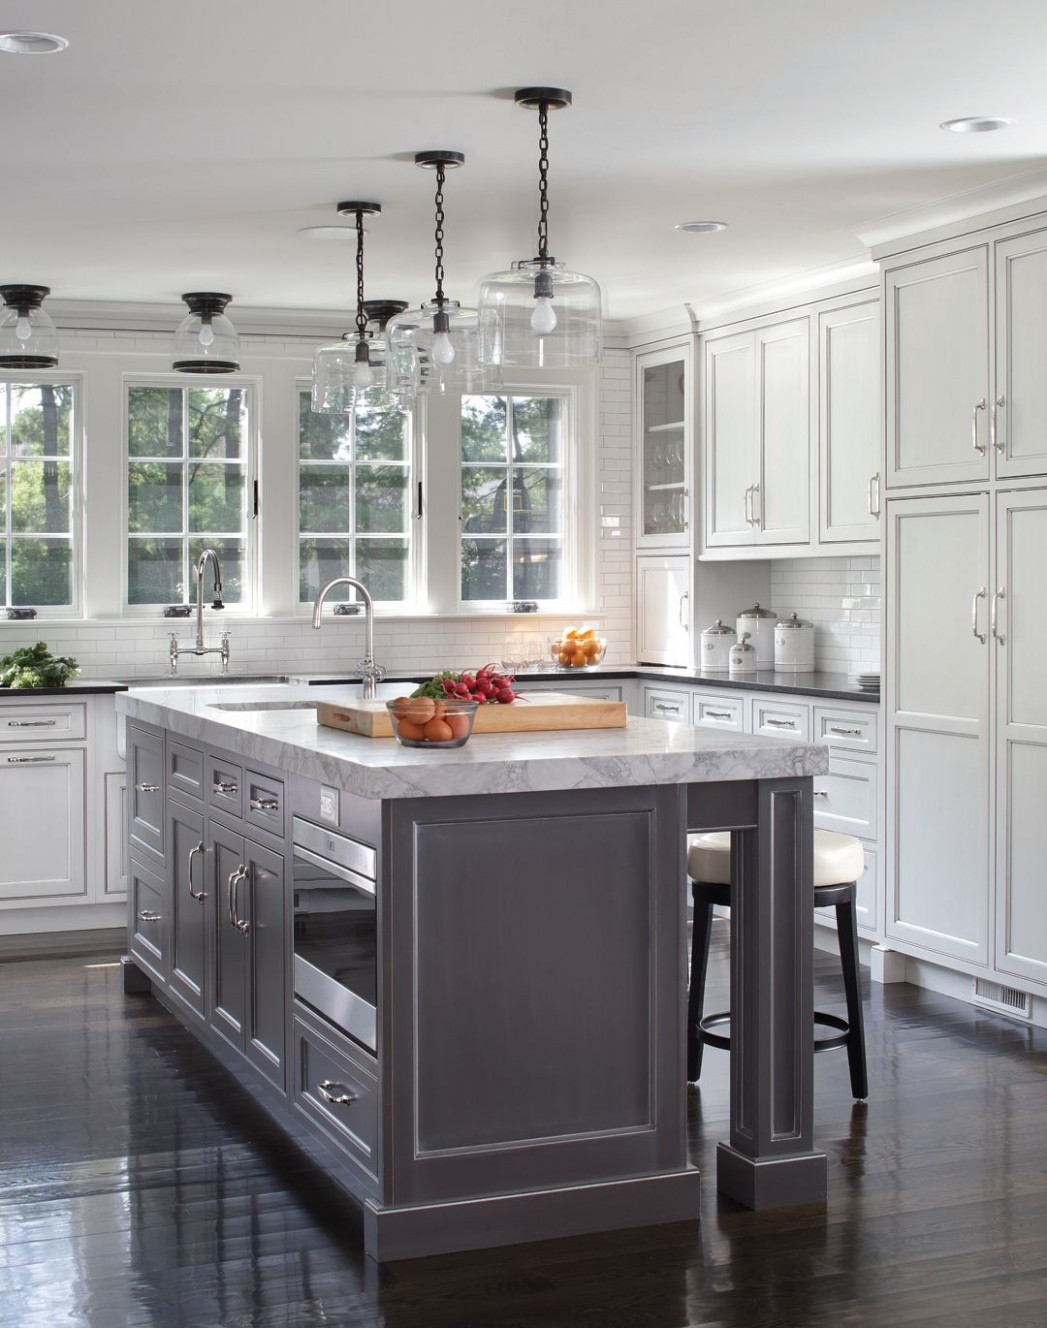 Decorative end panels and custom turned legs set this island apart  - Kitchen Cabinet Decorative End Panels